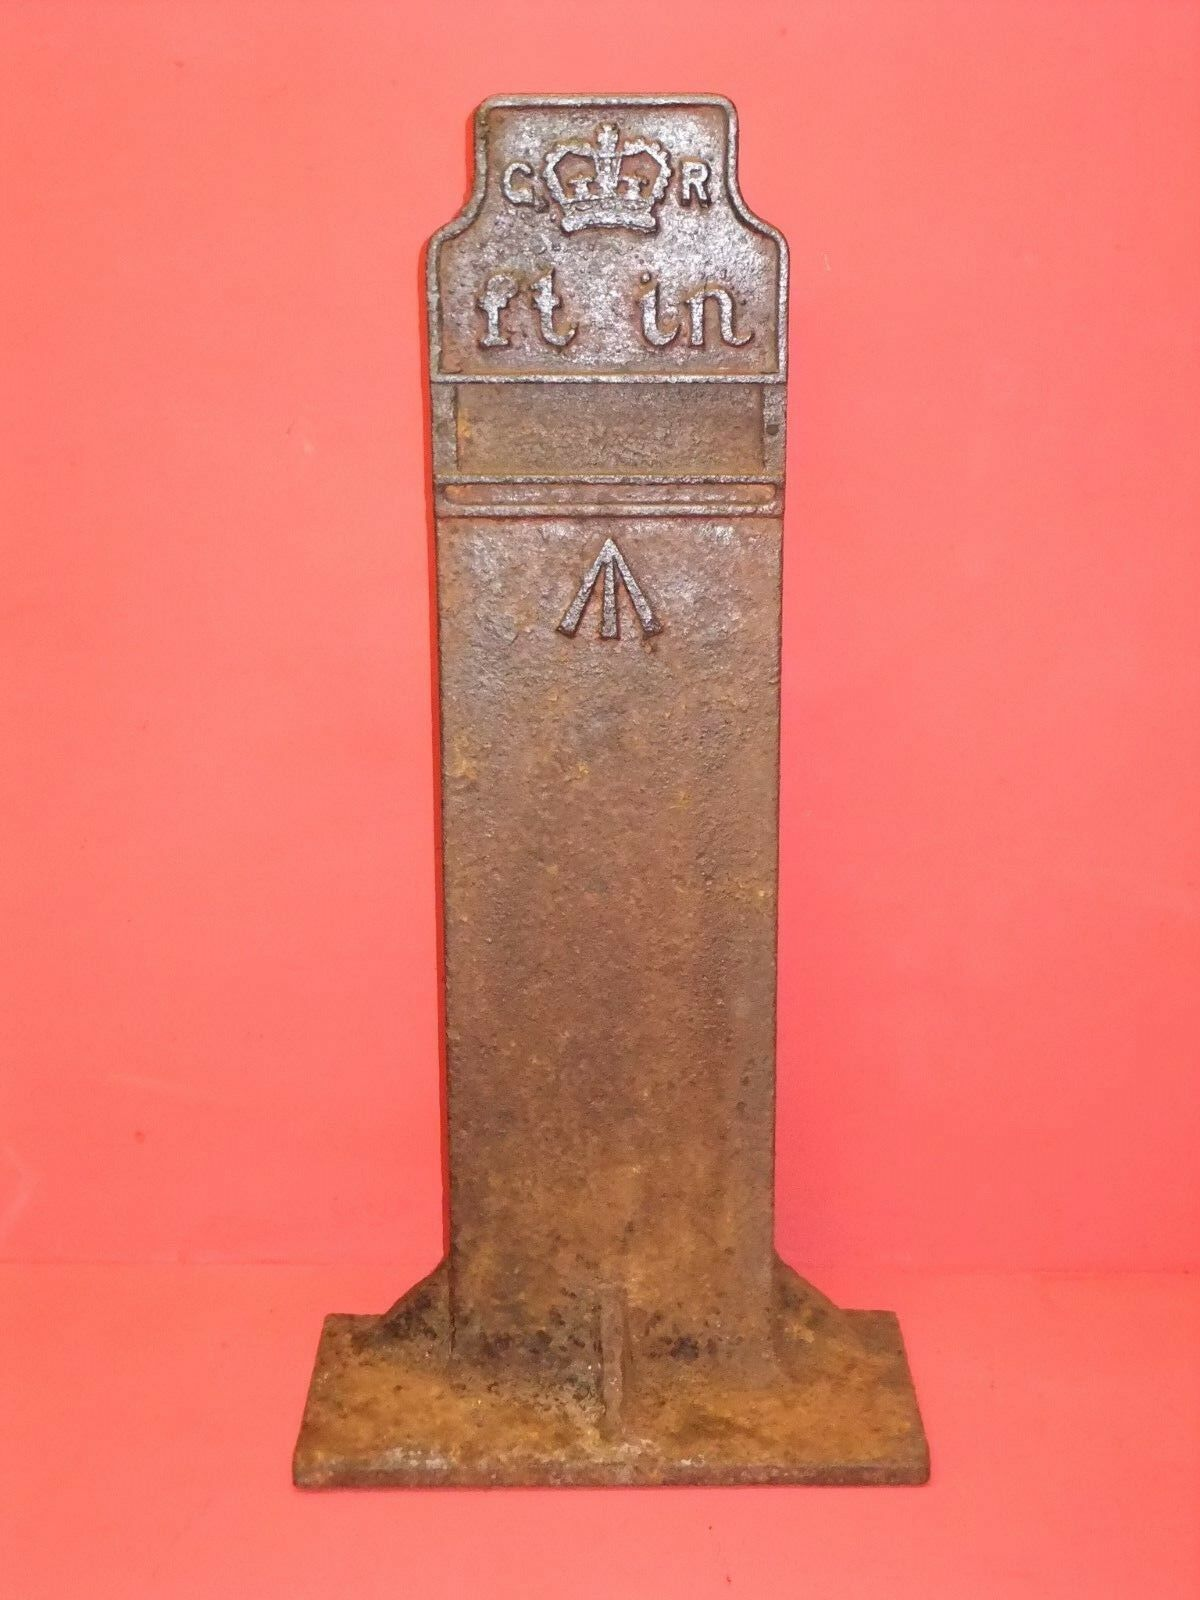 Telegraph cable marker post at ebay by frederick200503